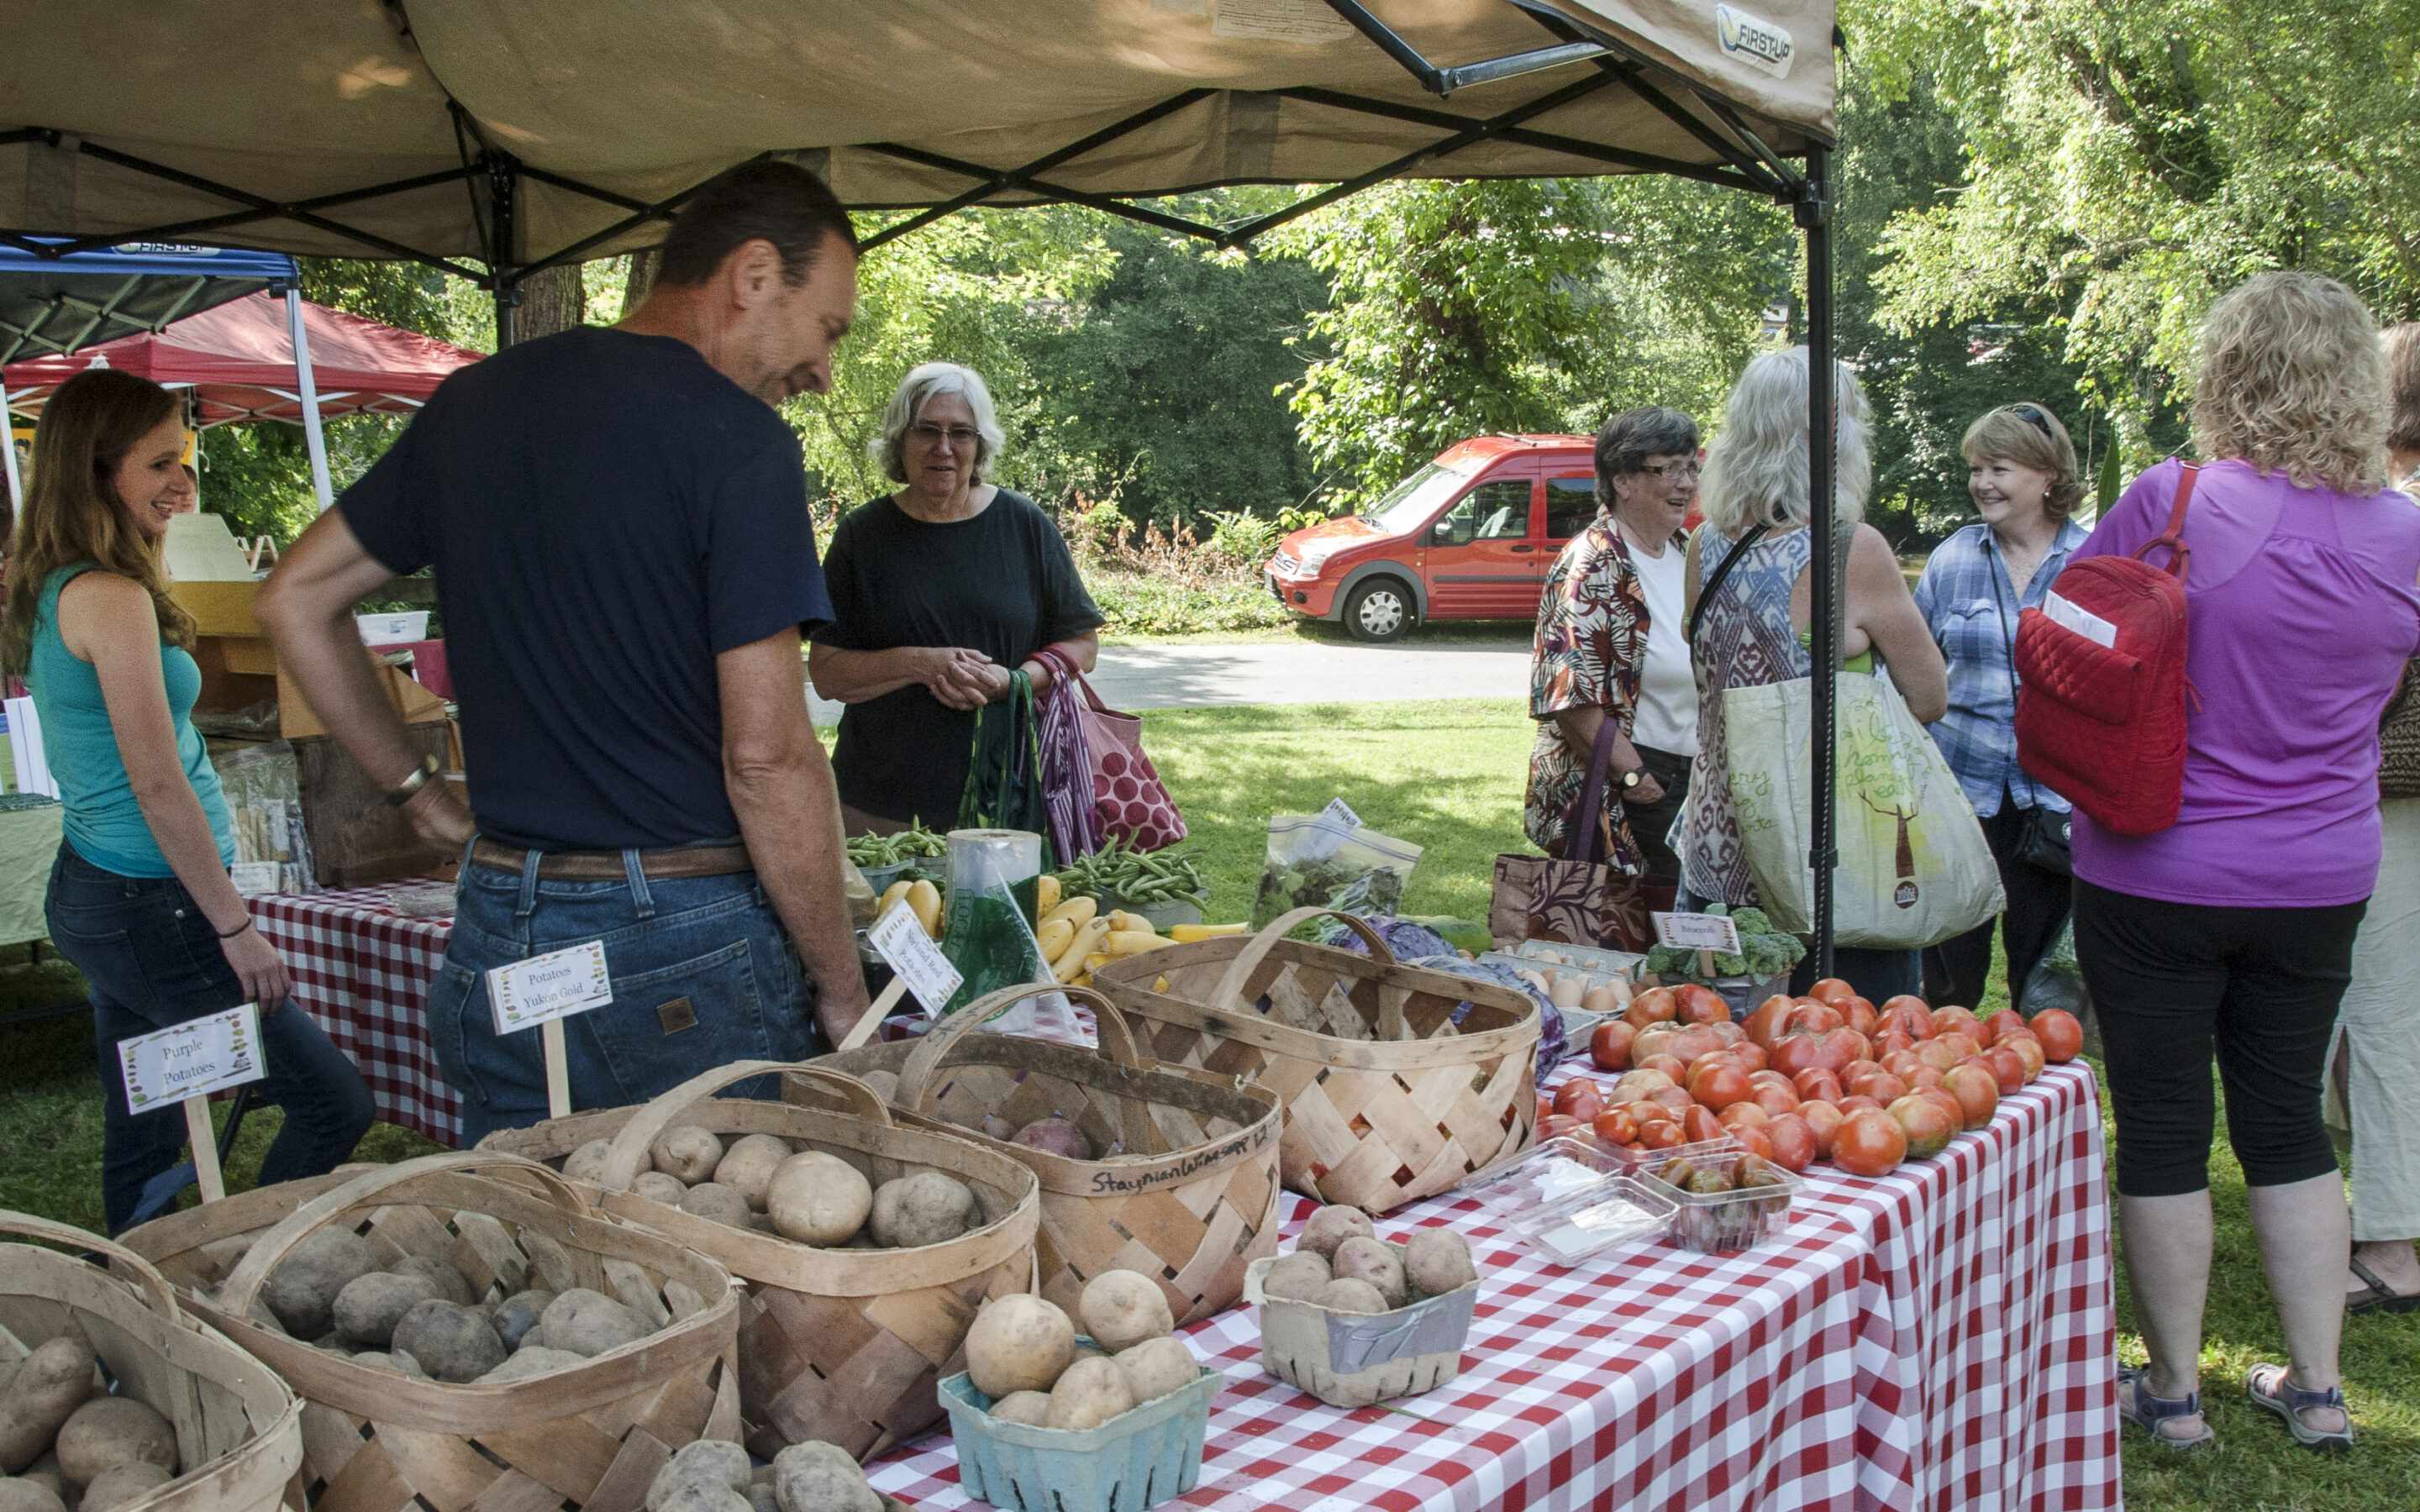 On Weekends, Swain County's Growers and Artisans Bring Their Goods to Town.